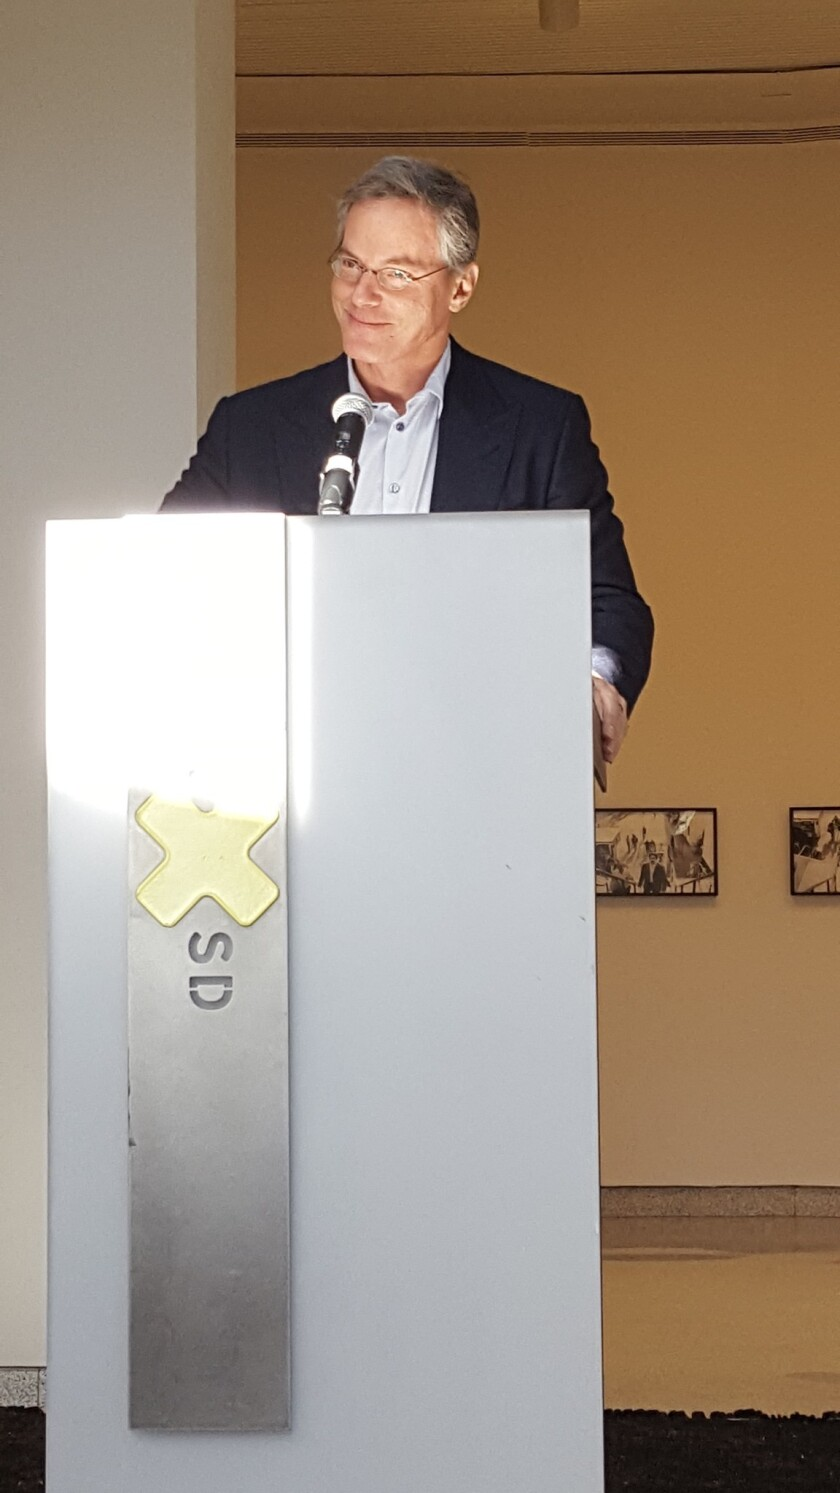 Incoming MCASD board president Paul Jacobs speaks about the Museum's cultural contributions to La Jolla at its 75th anniversary press conference, Oct. 18.